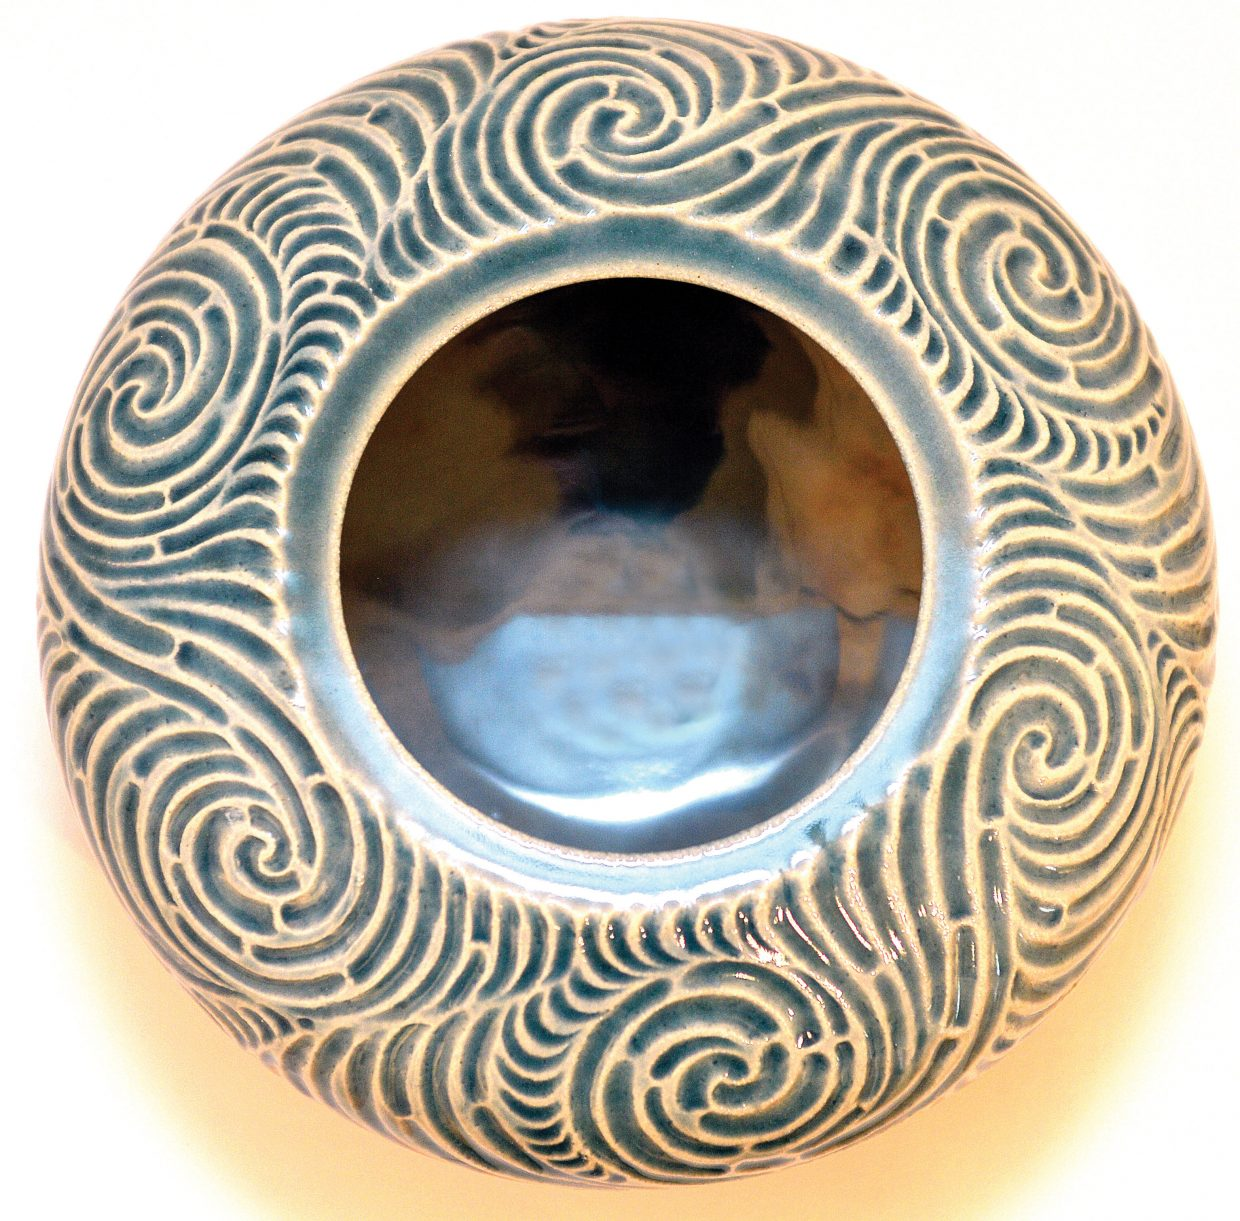 River Vessel by Julie Anderson is being featured in the Clay Artisans show, The Yampa Valley Curse, which is currently on display at the Steamboat Depot Art Center.